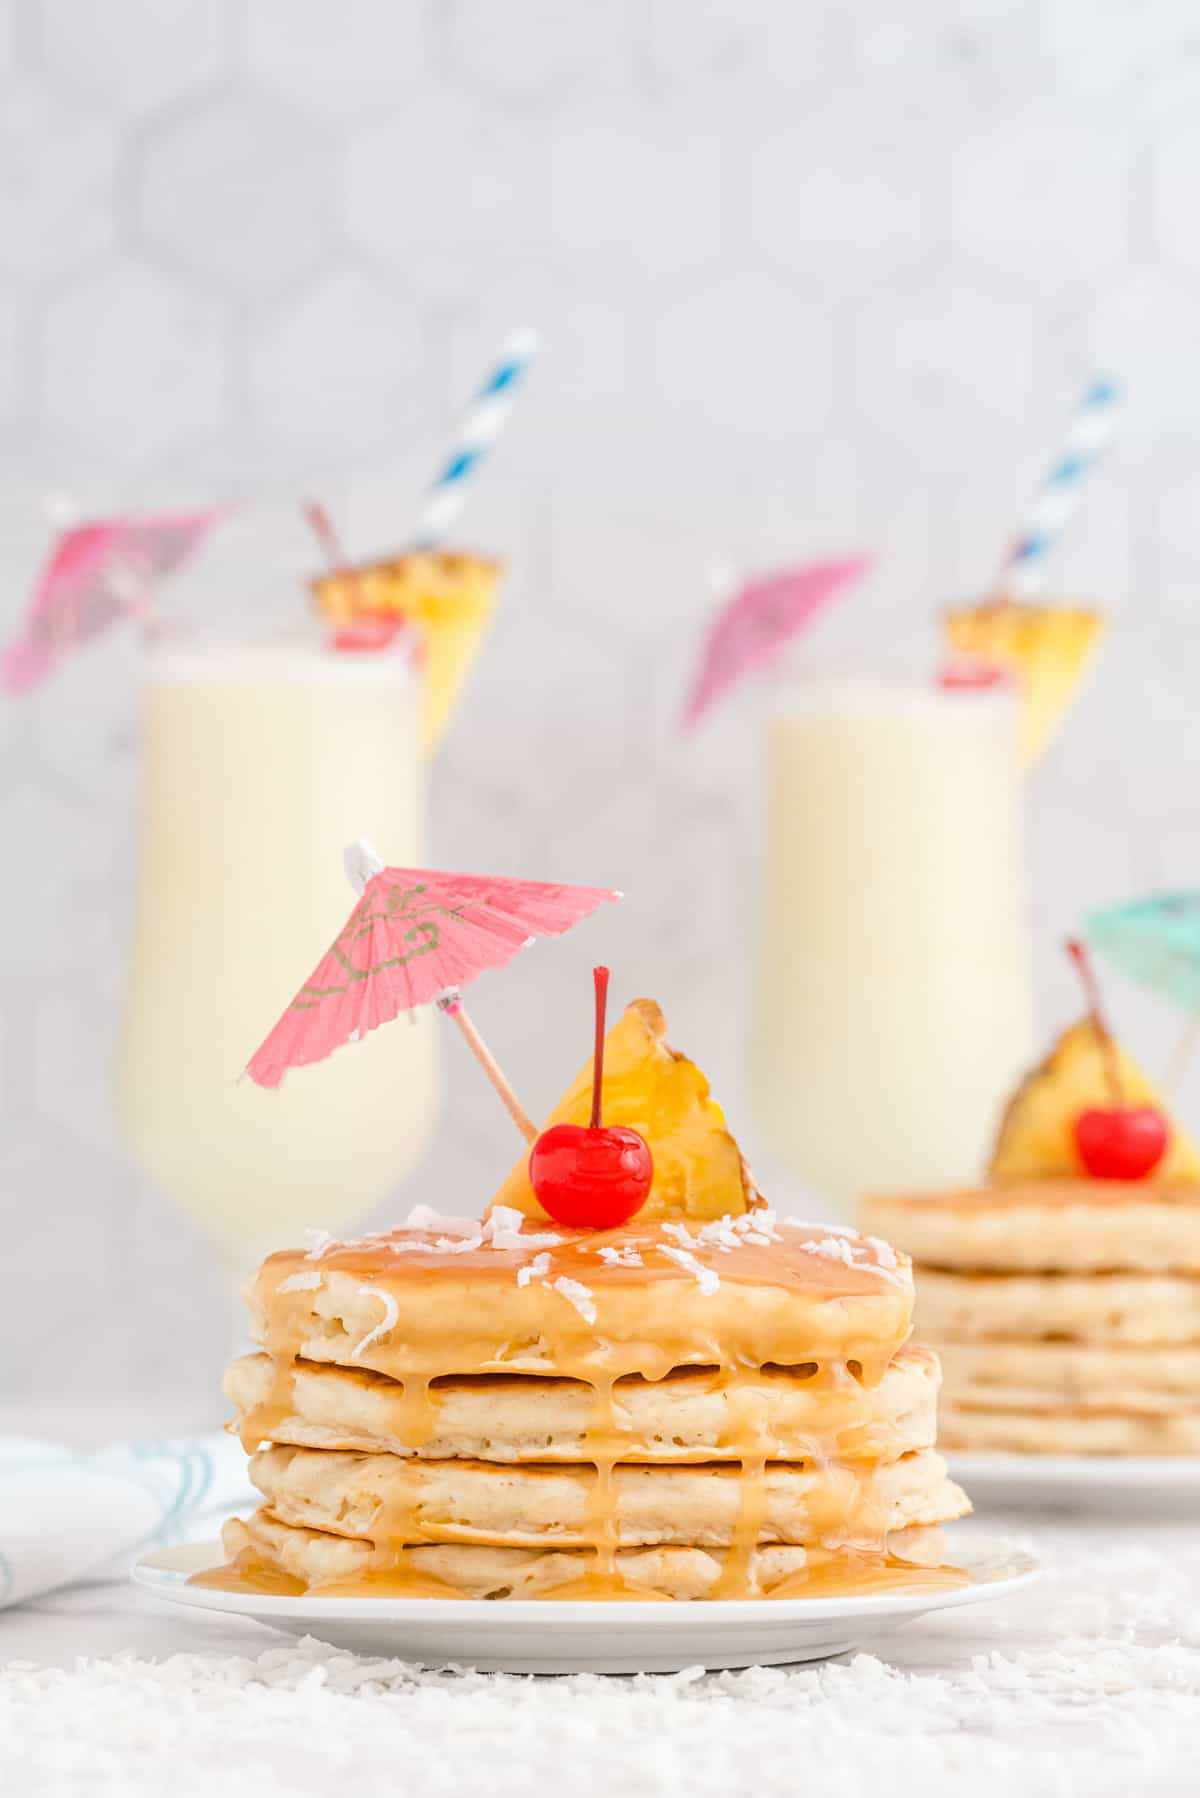 Pancakes with pina coladas in the backgorund.